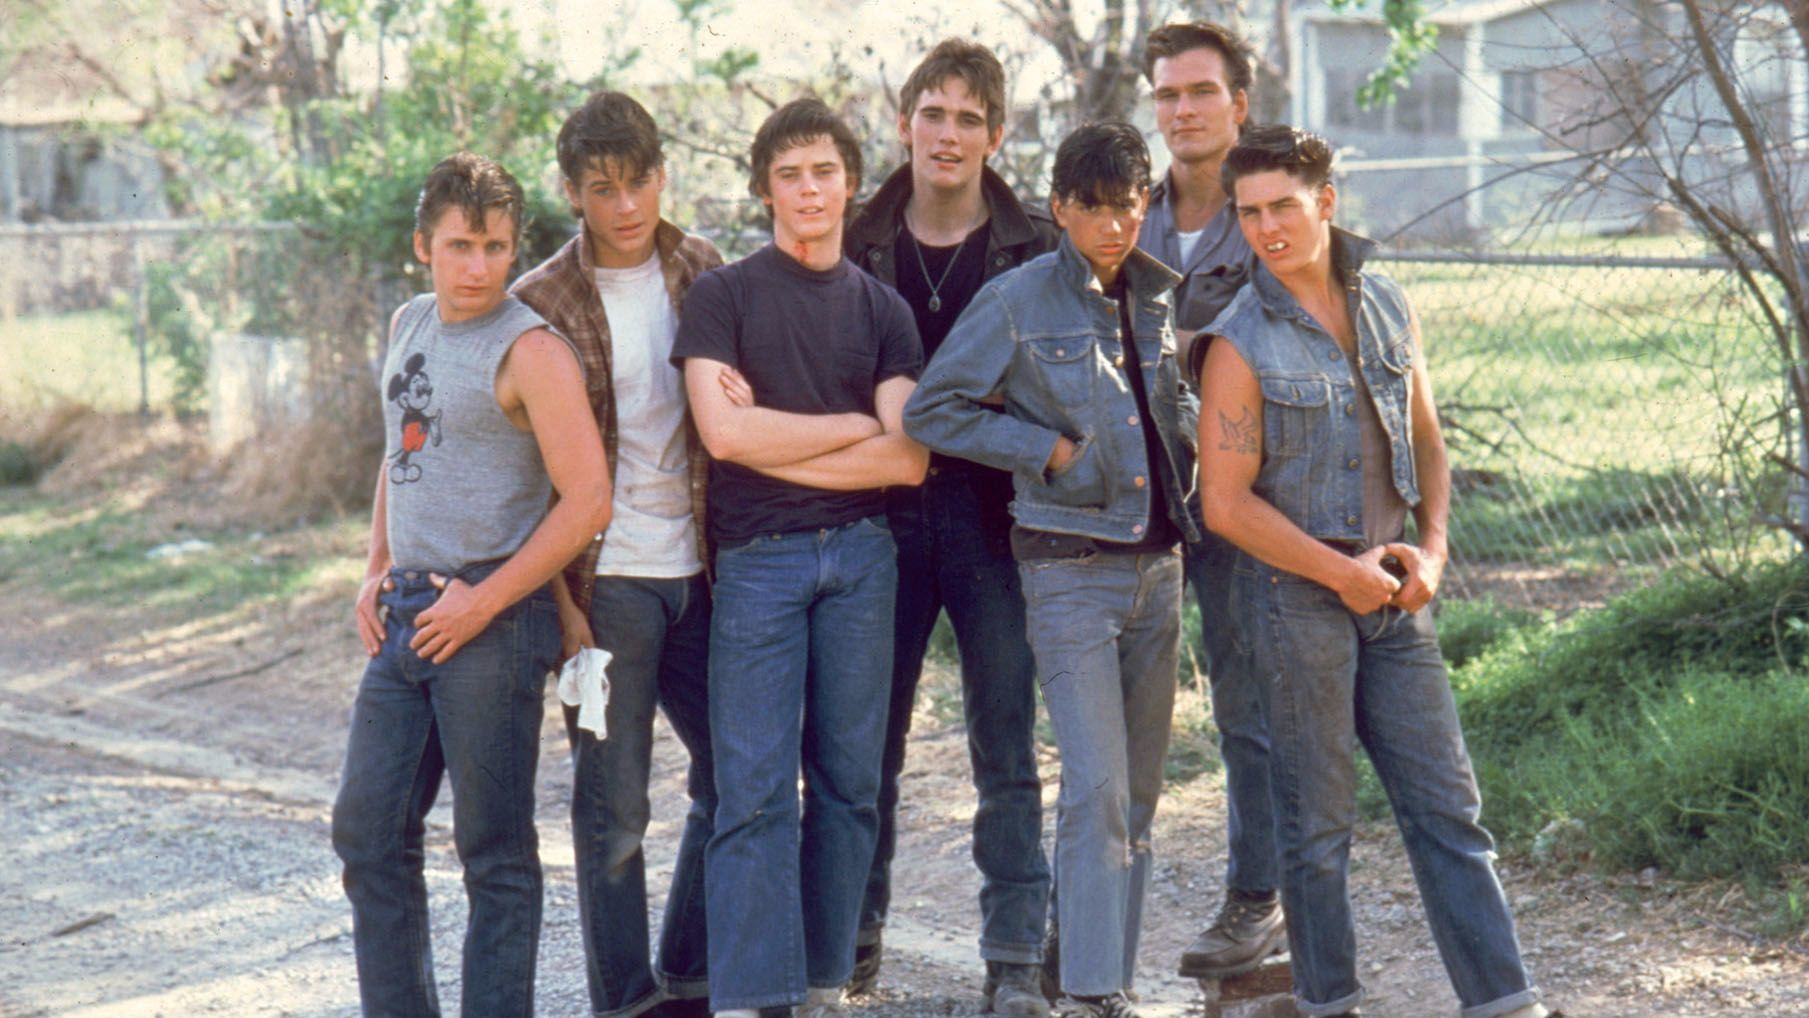 The outsiders dally pictures Go Out with a Smile - TV Tropes